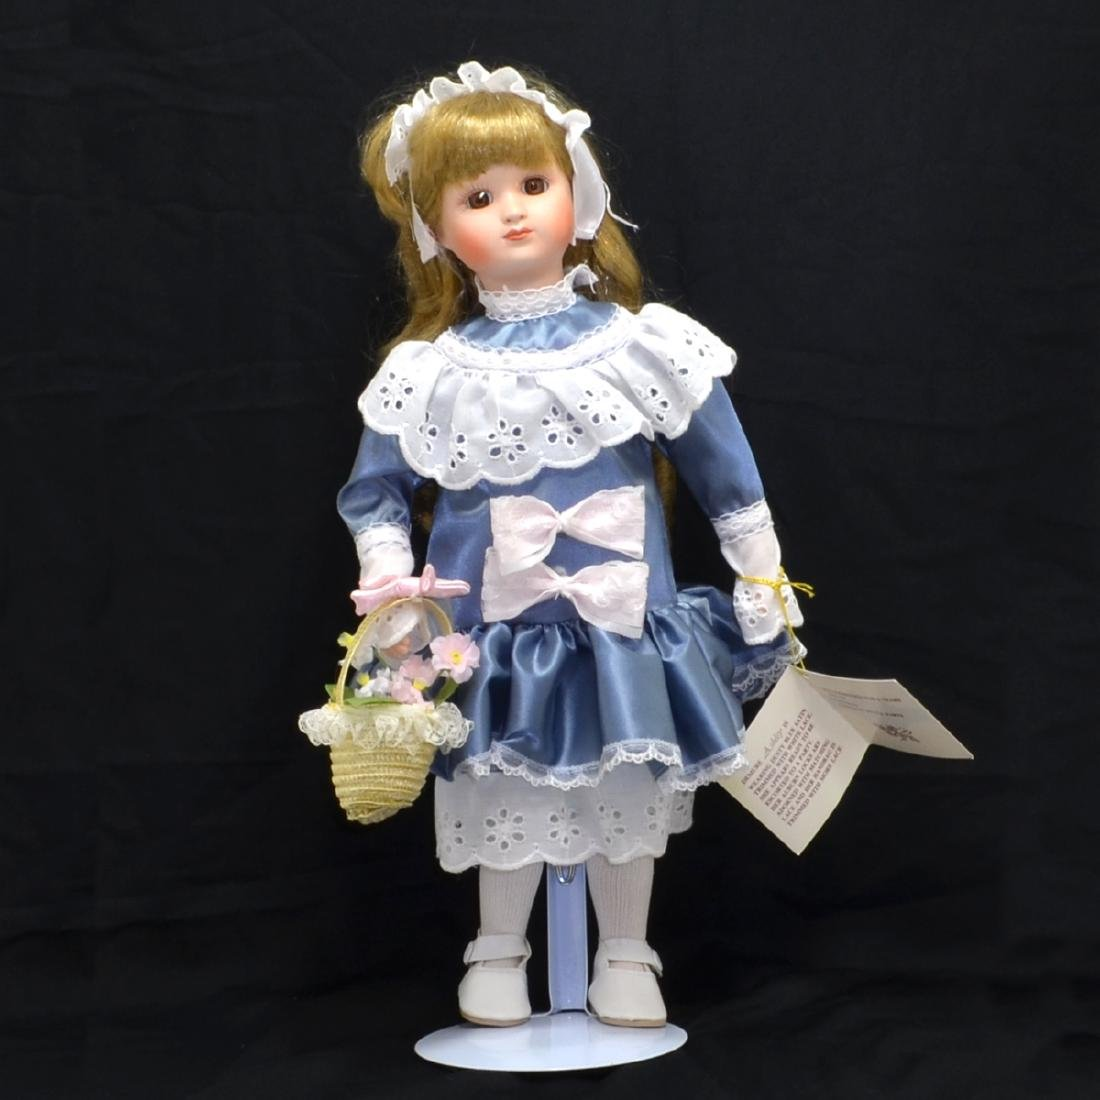 Rare Collectable Porcelain Doll